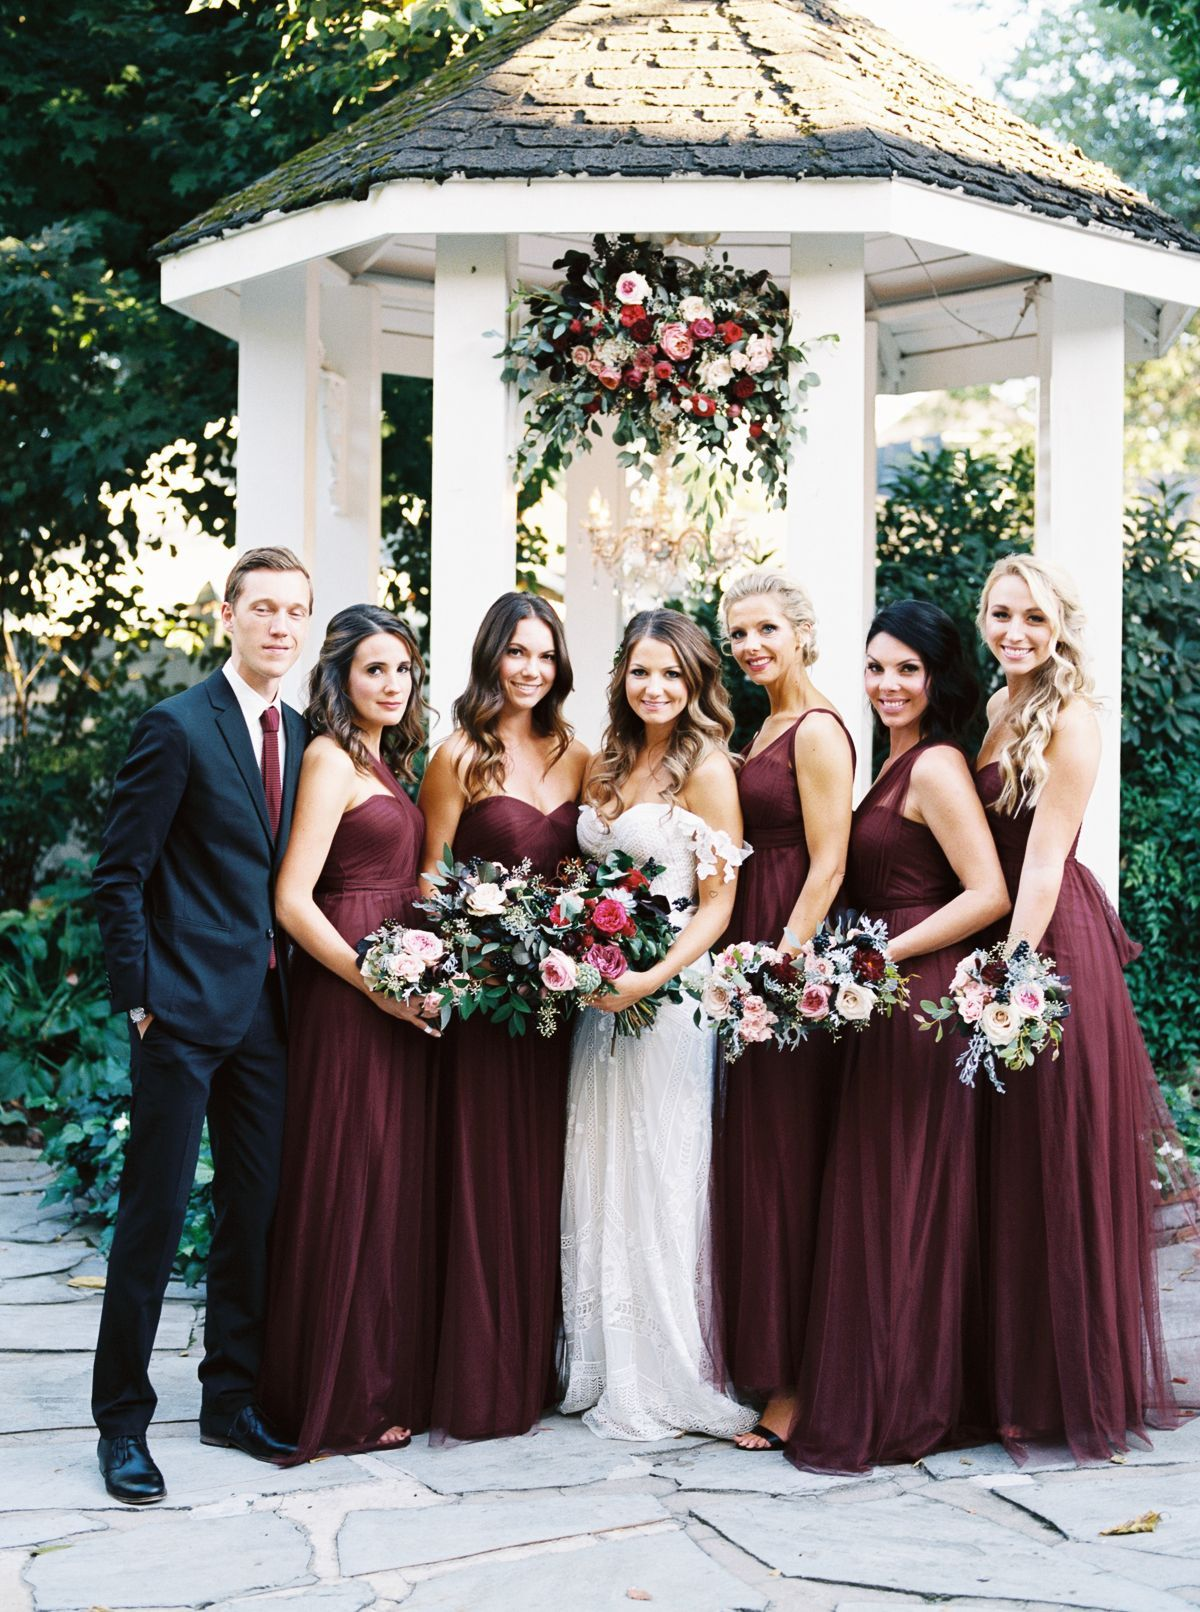 Dramatic Boho Fall Garden Wedding October 9 At Cj S Off The Square Nashville Garden Wedding Event Venue Cj S Off The Square In 2020 Wine Bridesmaid Dresses Wine Colored Wedding Wine Color Bridesmaid Dress